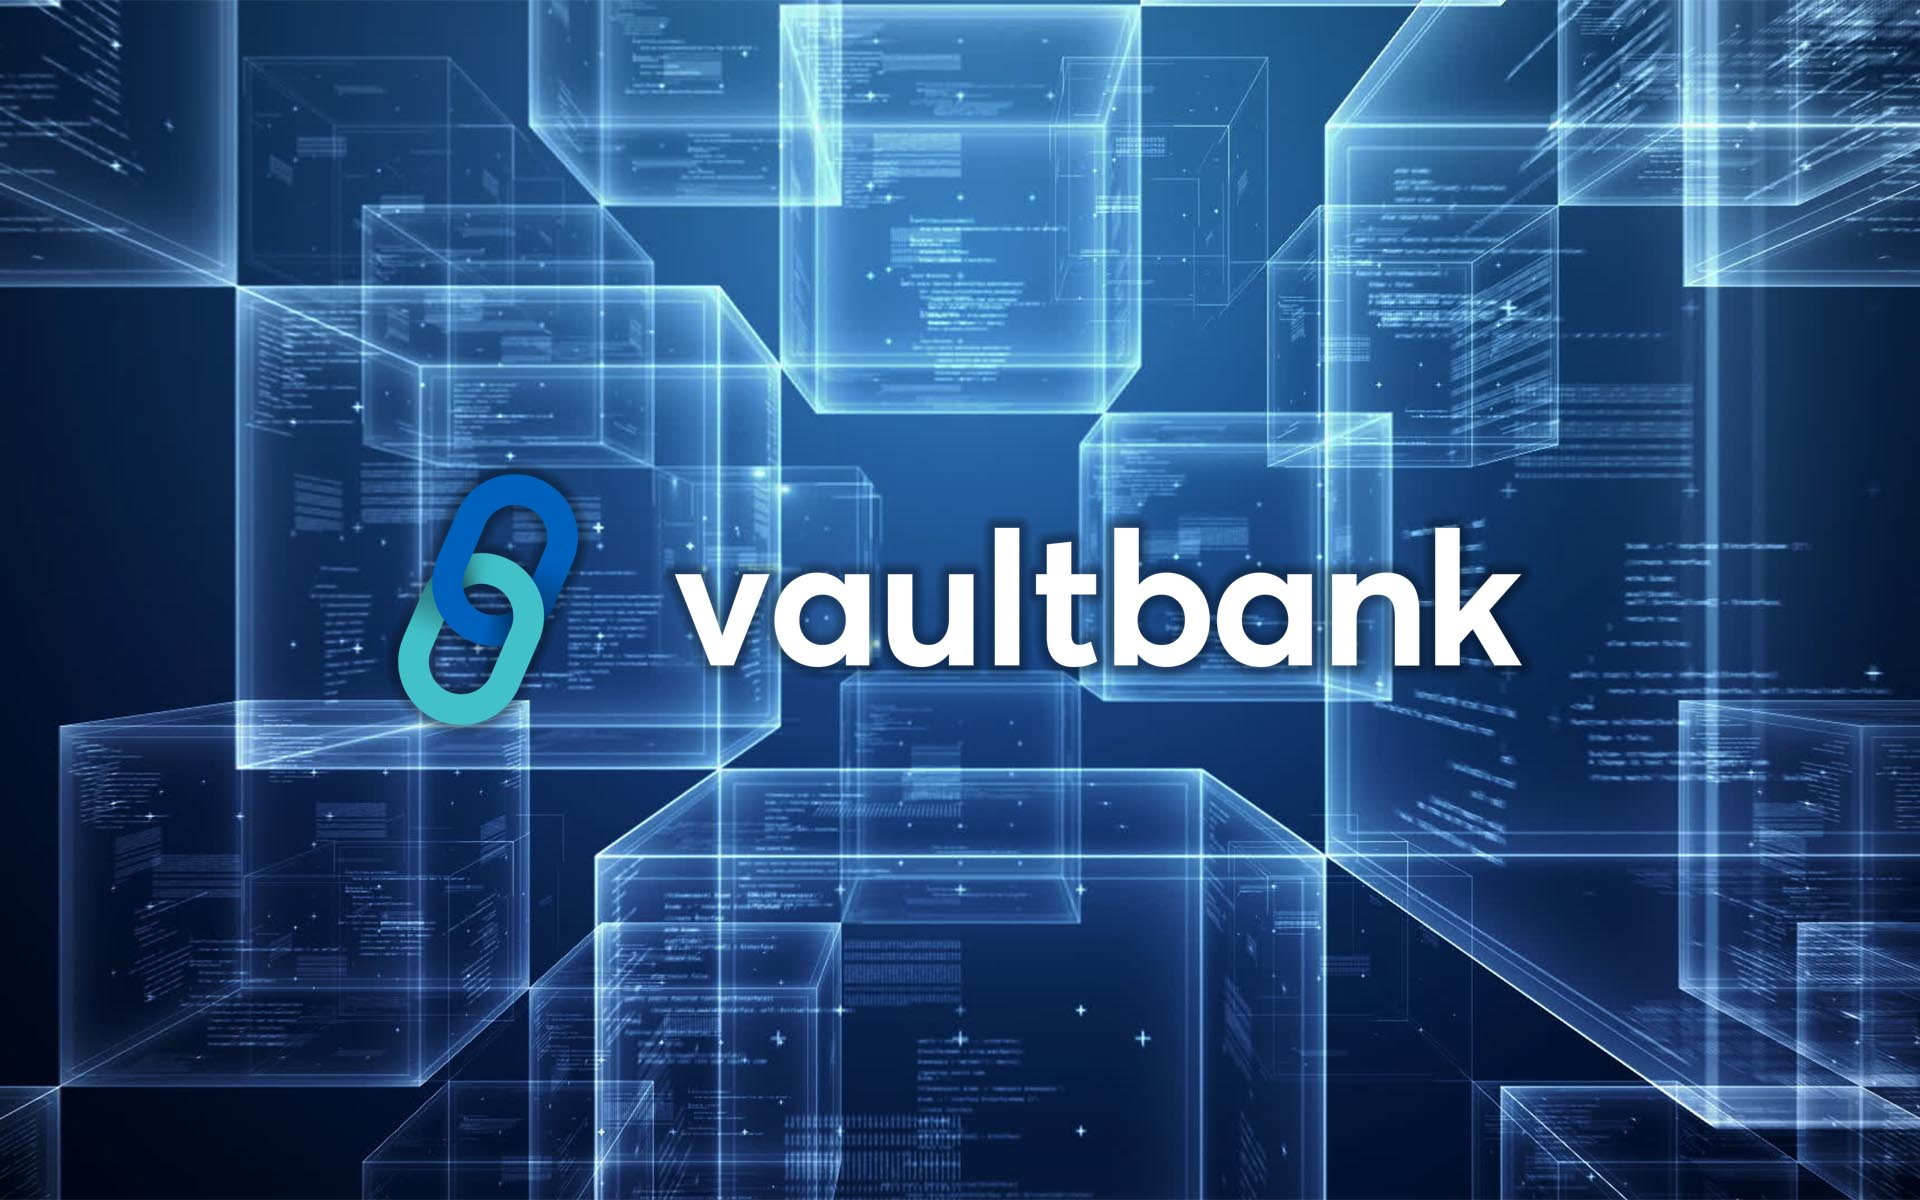 Vaultbank – The Blockchain Bank Announces its Initial Coin Offering Campaign